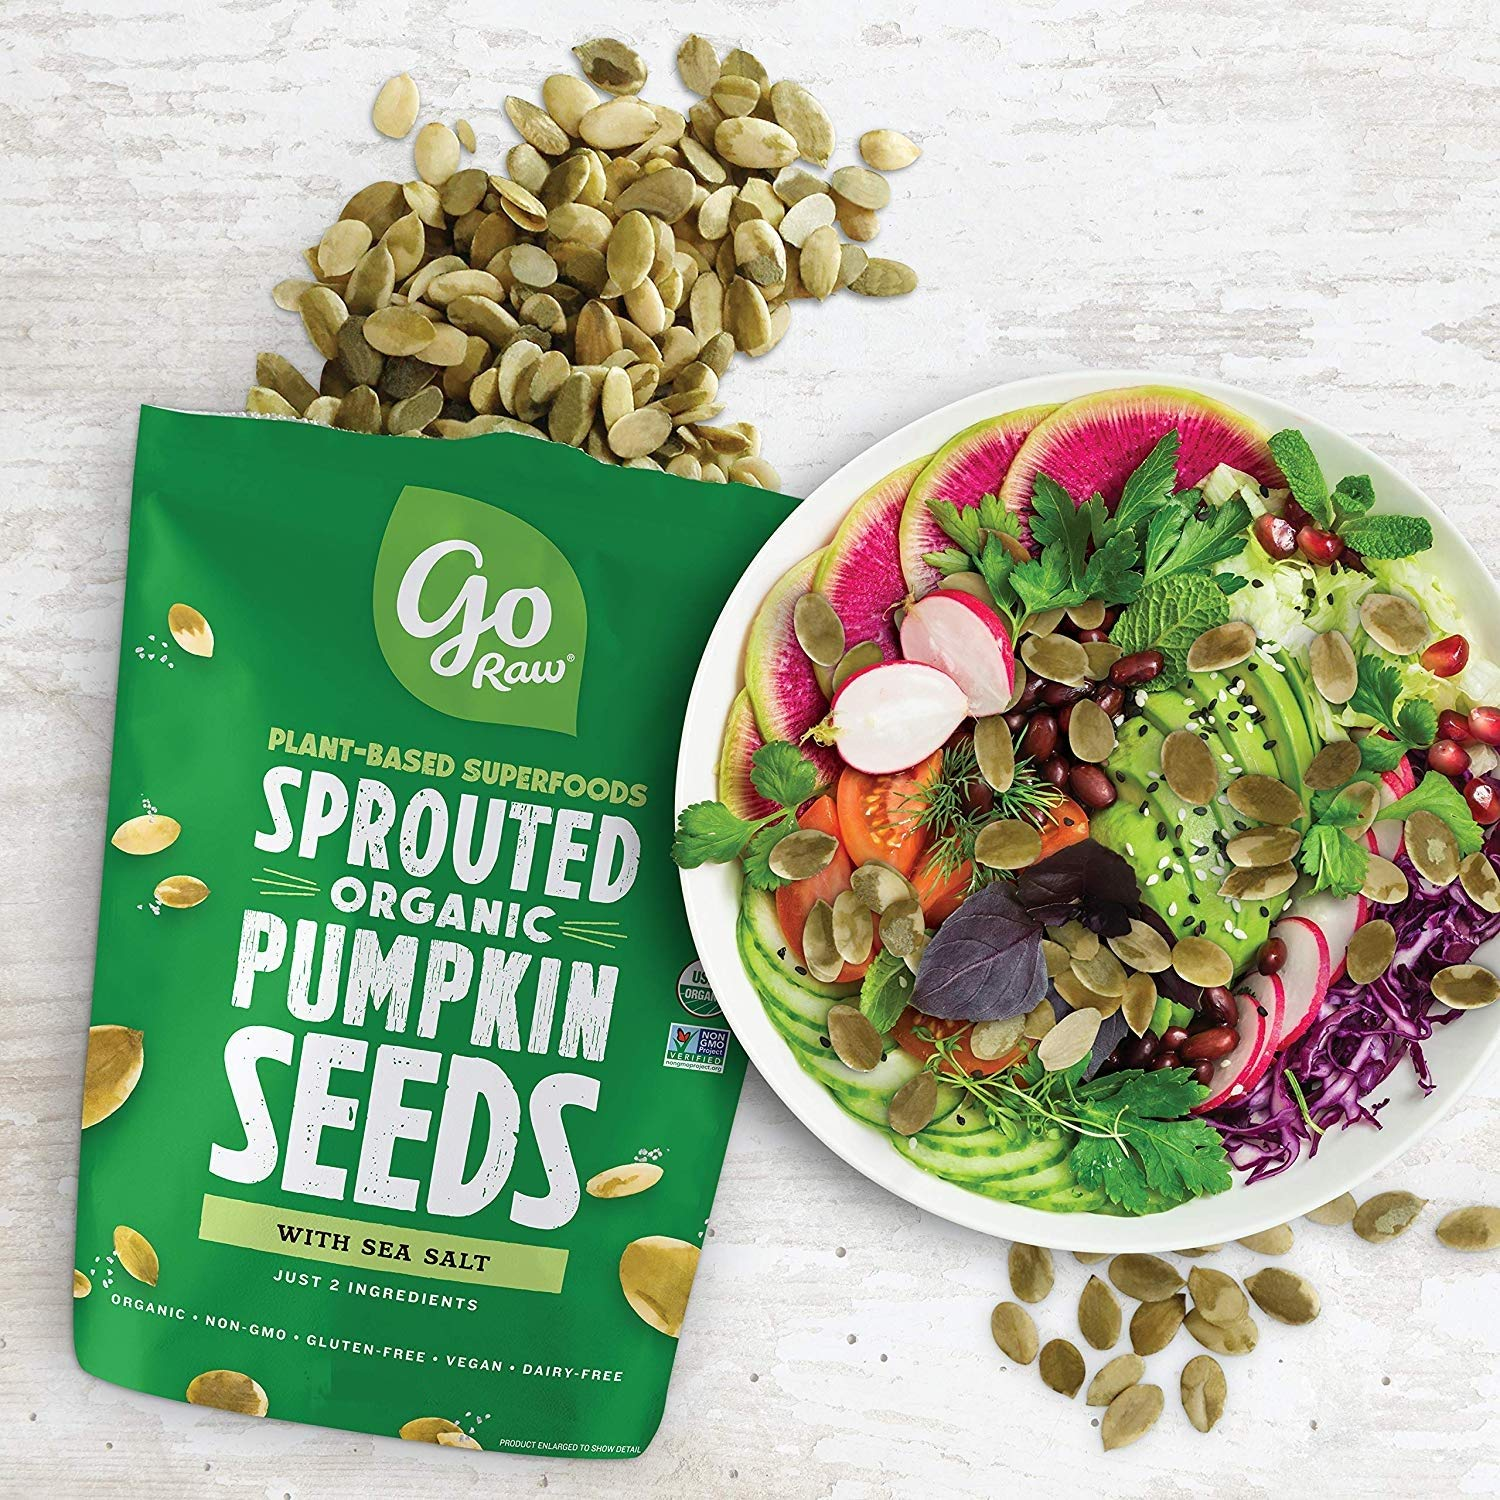 Go Raw Pumpkin Seeds with Sea Salt, Sprouted & Organic, 14oz. | Keto | Vegan | Gluten Free Snacks | Superfood